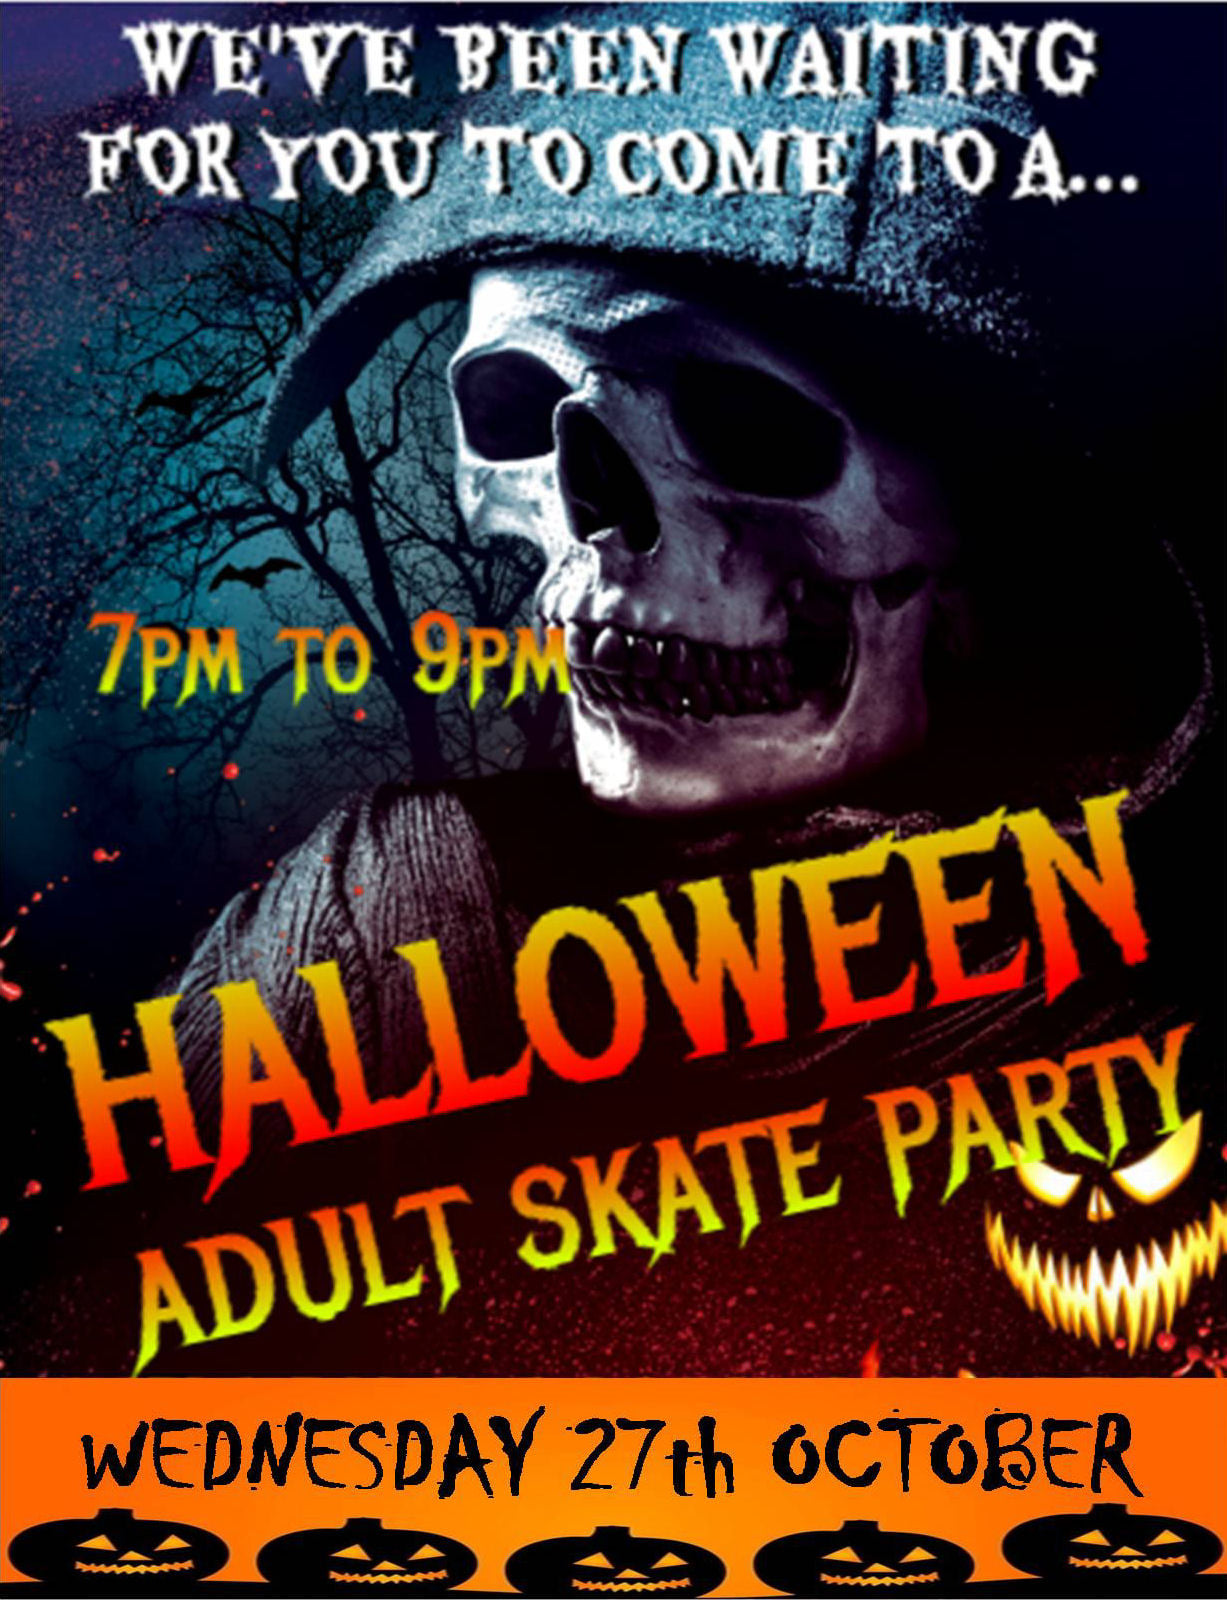 HALLOWEEN OVER 18'S ONLY WEDS 27TH OCT 7-9PM